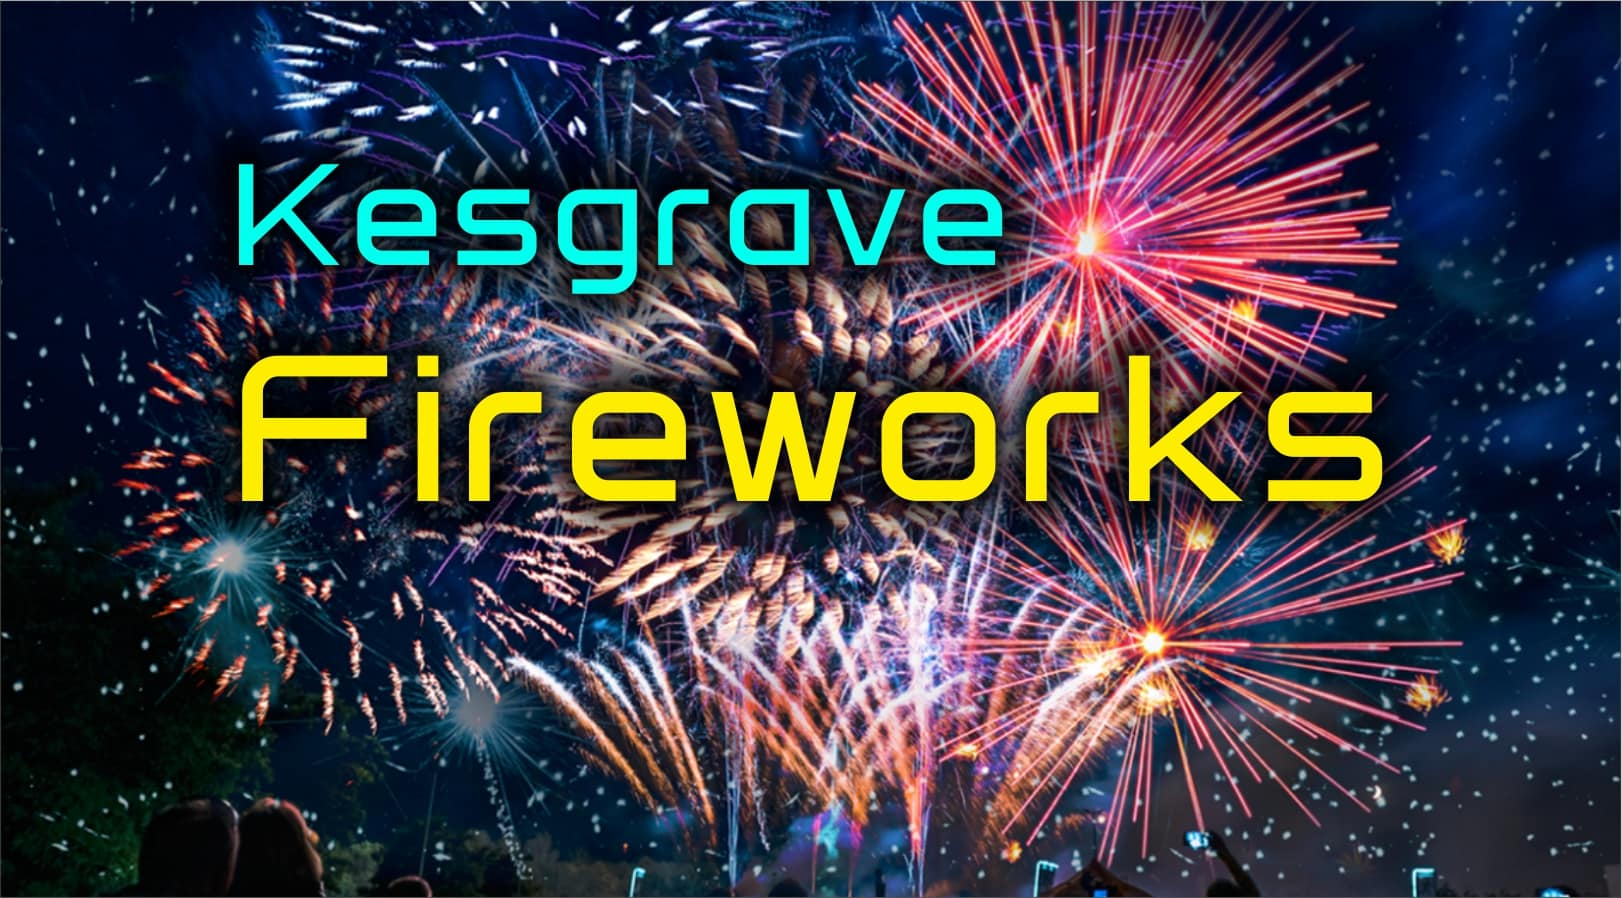 kesgrave fireworks features image